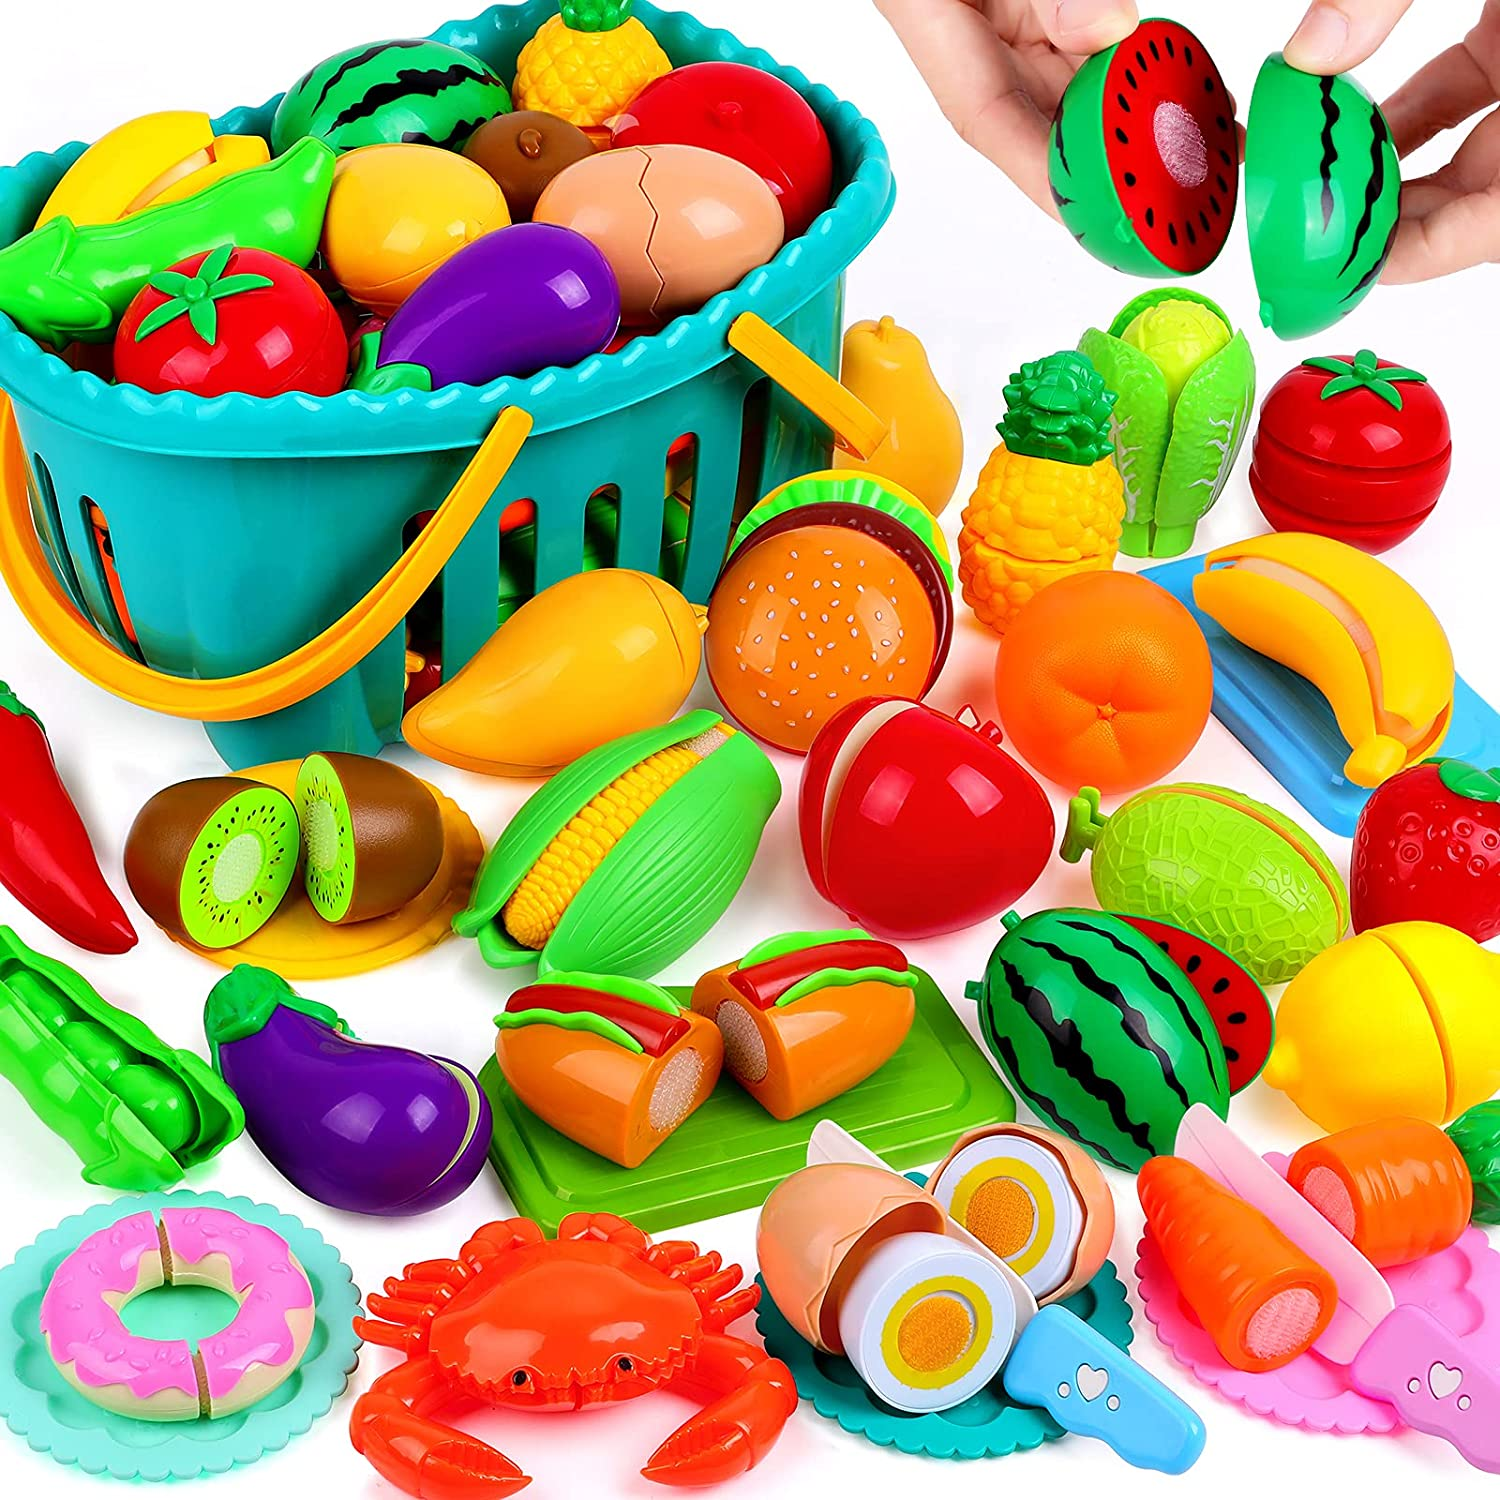 OCATO 70PCS Cutting Play Food Set for Kids Kitchen Toys Food Cutting Toys Fruits and Vegetables with Storage Basket Fake Food Pretend Play Kitchen Accessories Toys for Toddlers Boys Girls Xmas Gifts